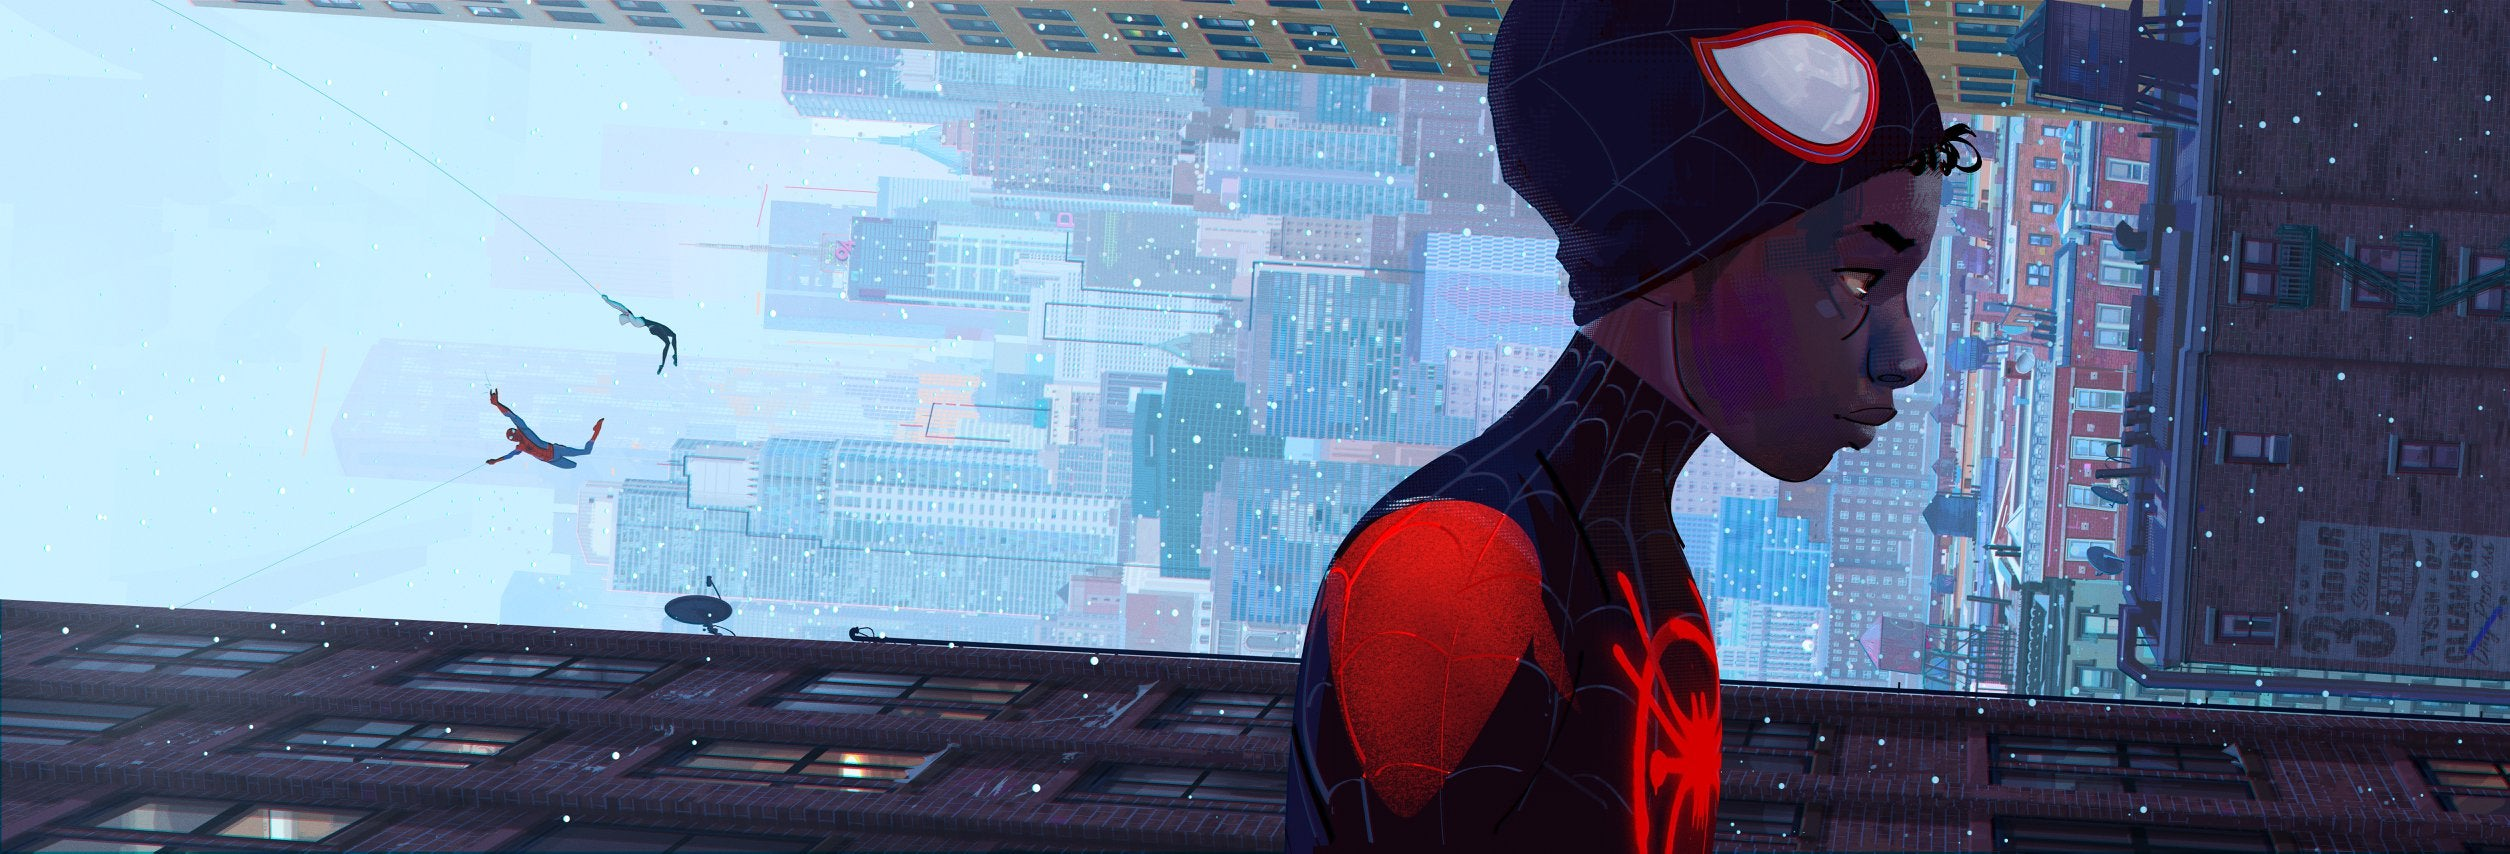 The Art Of Spider-Man: Into The Spider-Verse